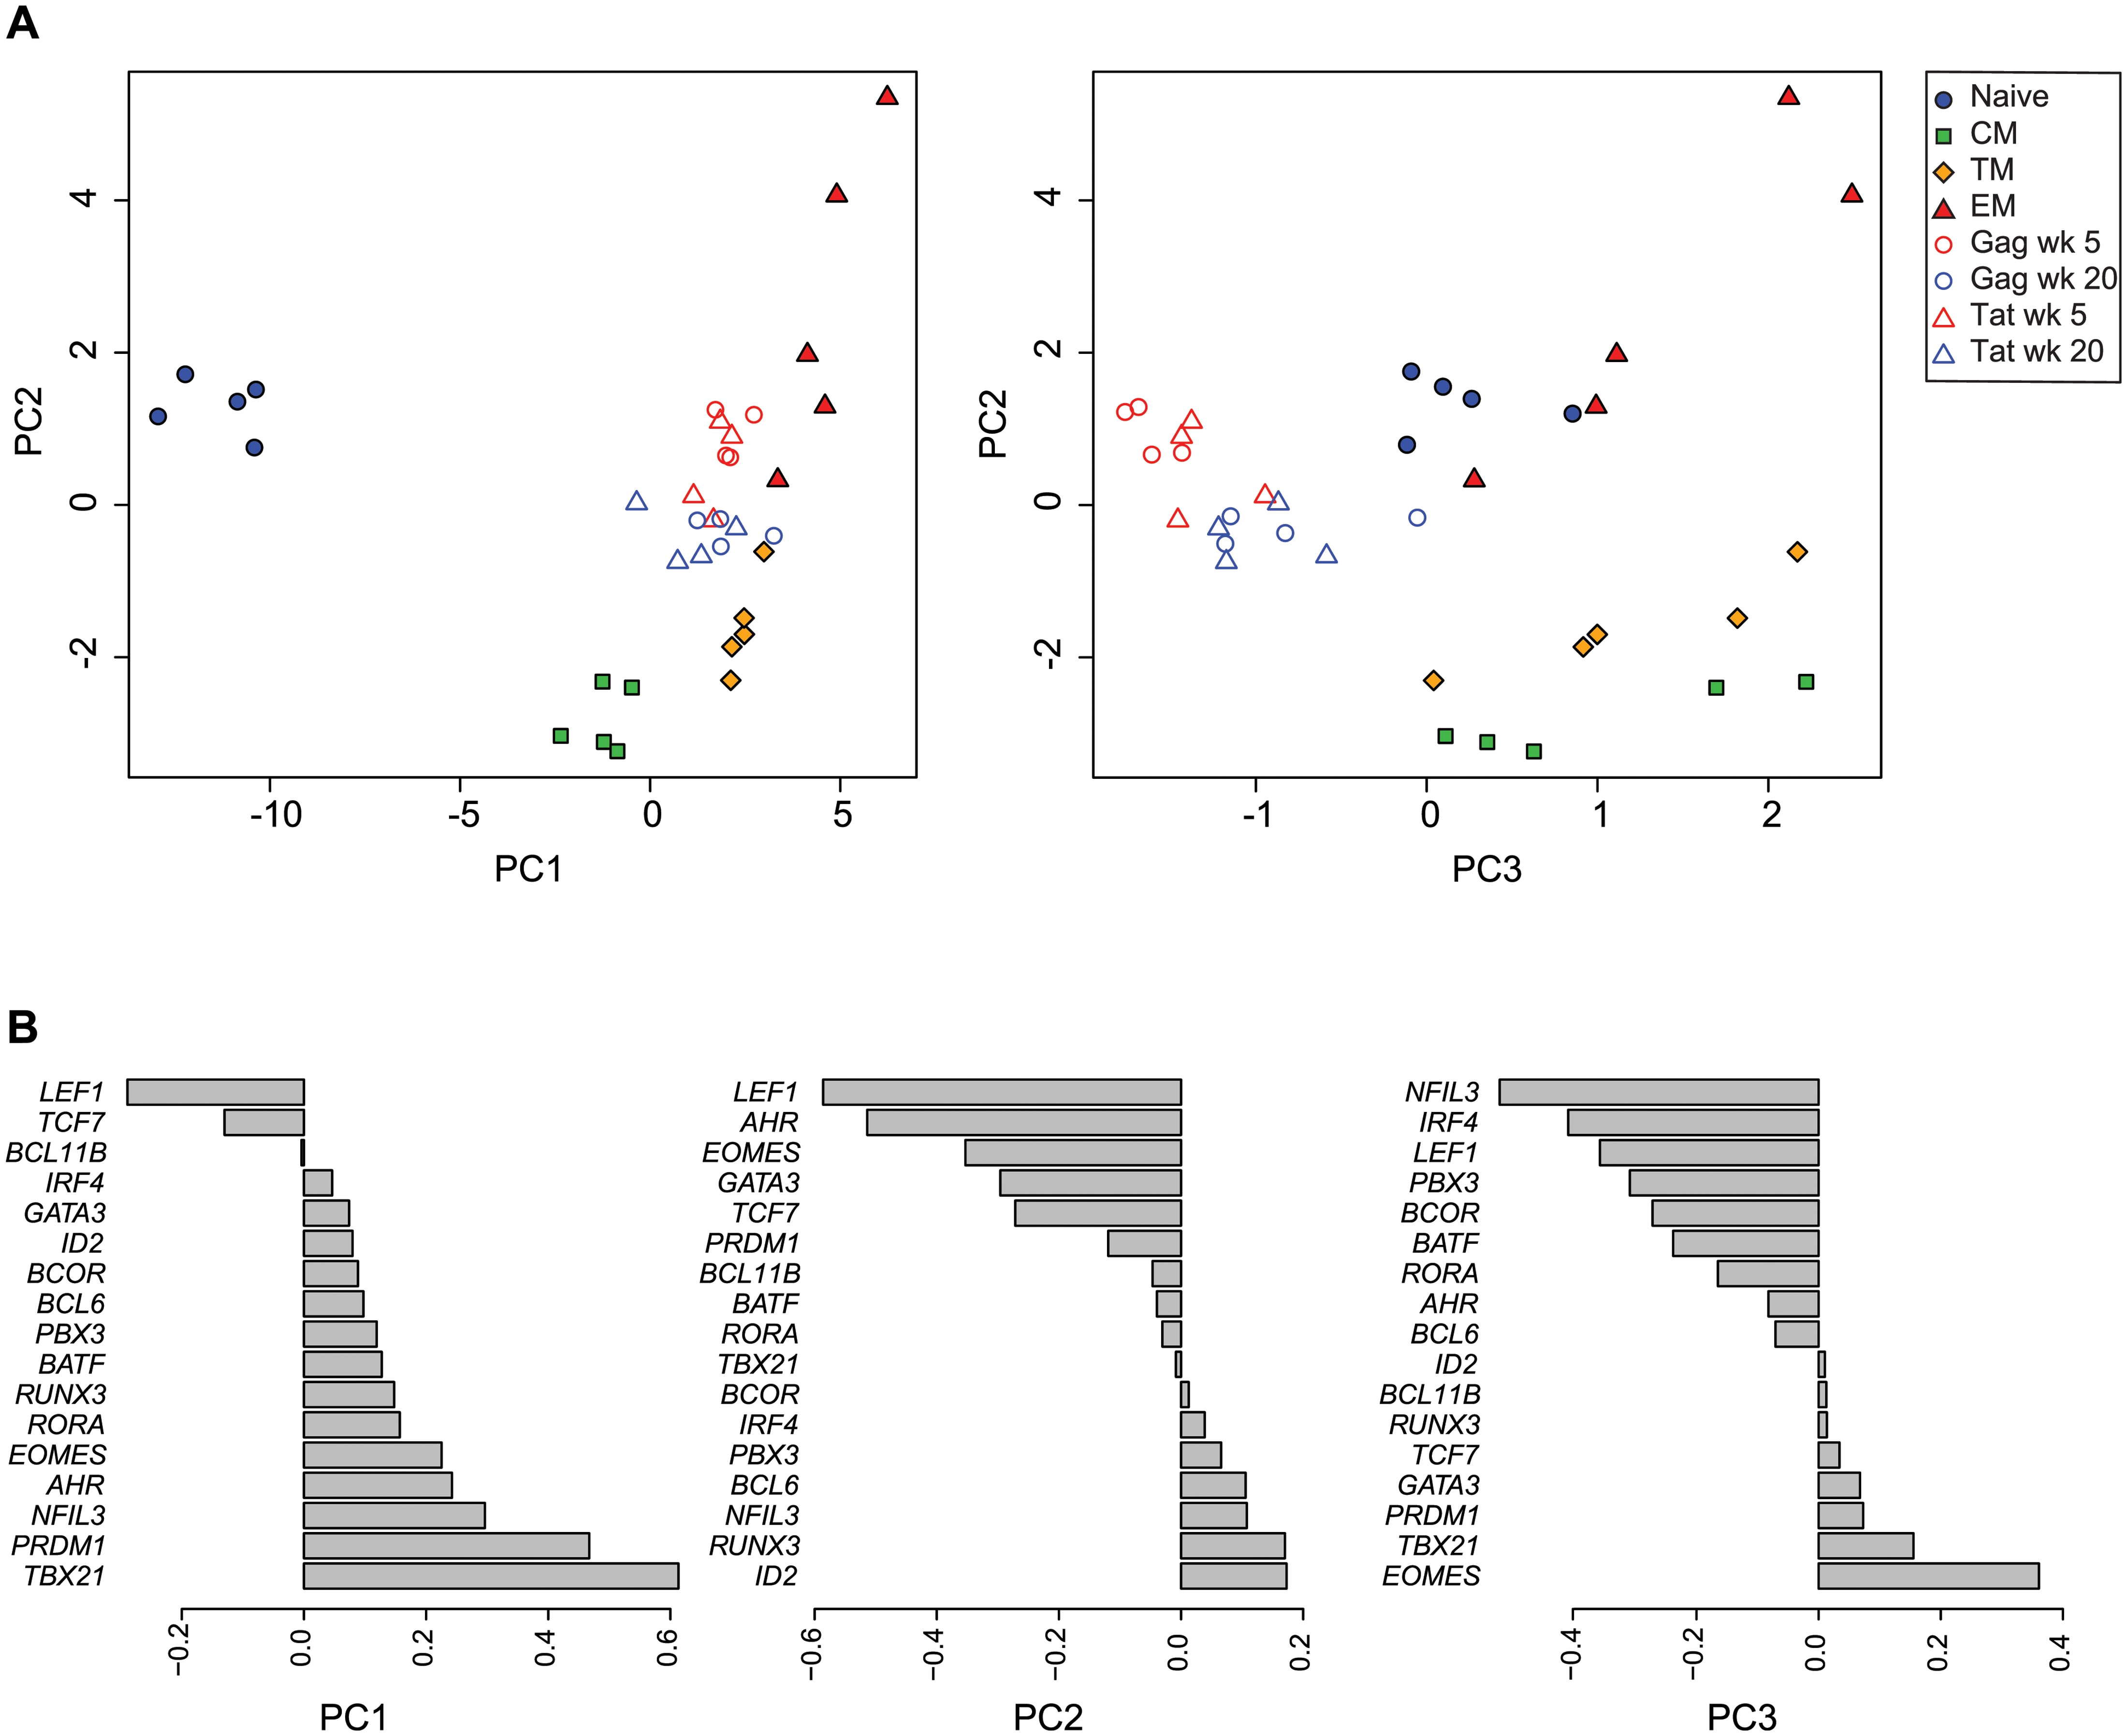 Principal component analysis of transcription factor expression profiles from SIV-specific MHC tetramer-sorted CD8<sup>+</sup> T cells and sorted CD8<sup>+</sup> T cell subsets.